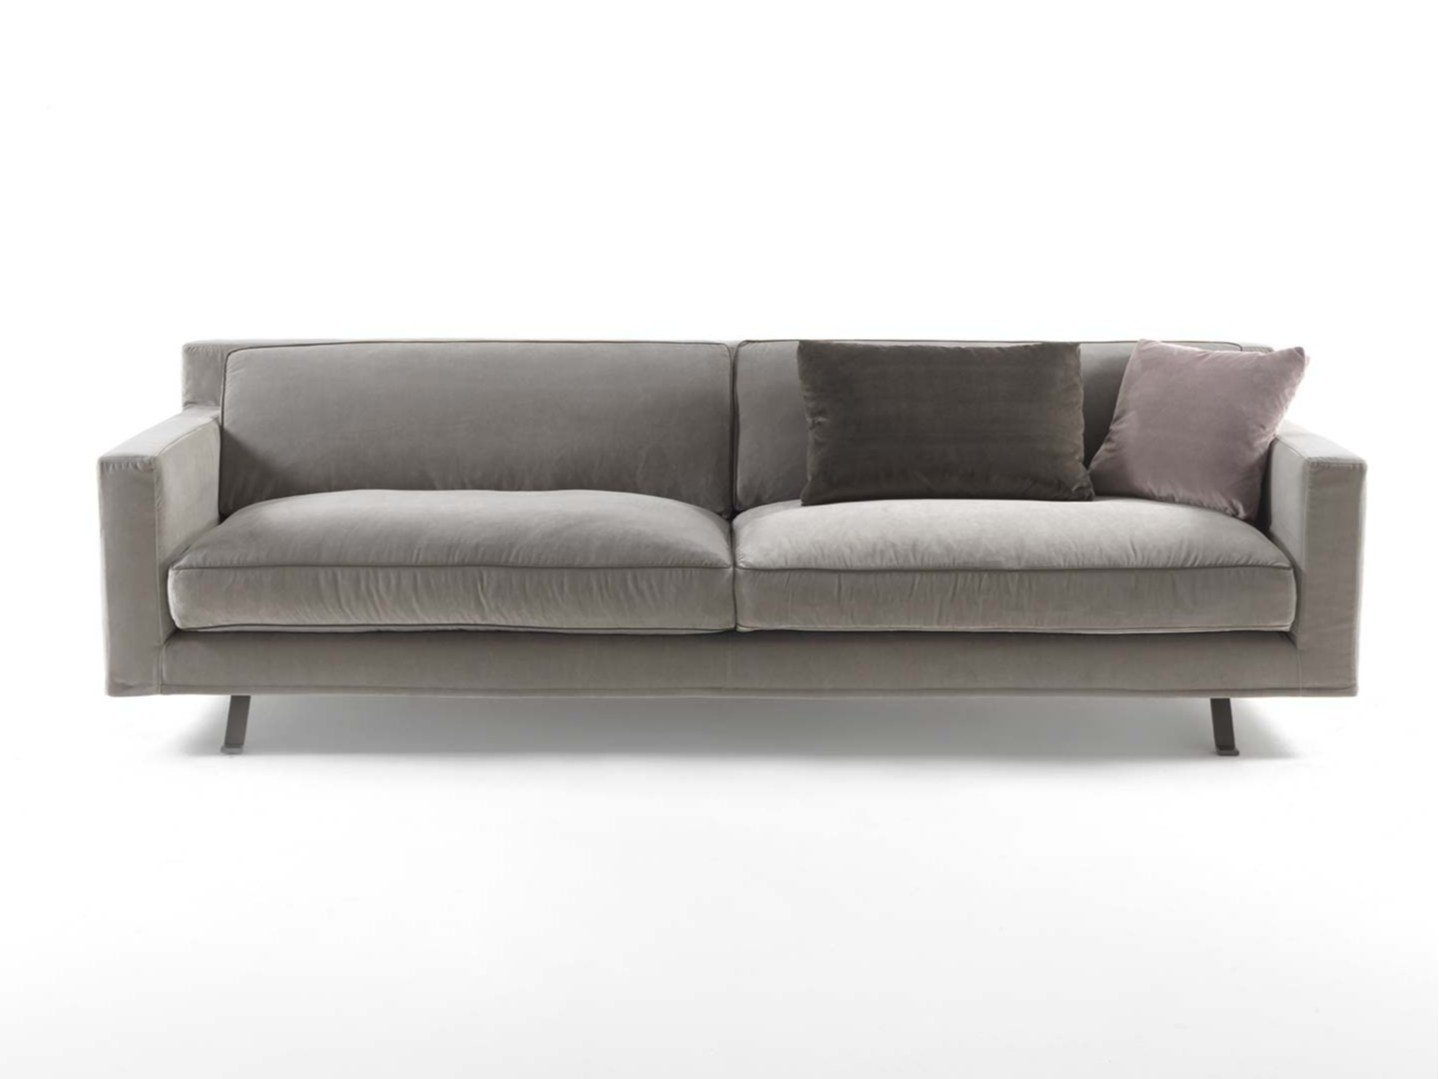 JAMES 4 seater sofa by FRIGERIO POLTRONE E DIVANI